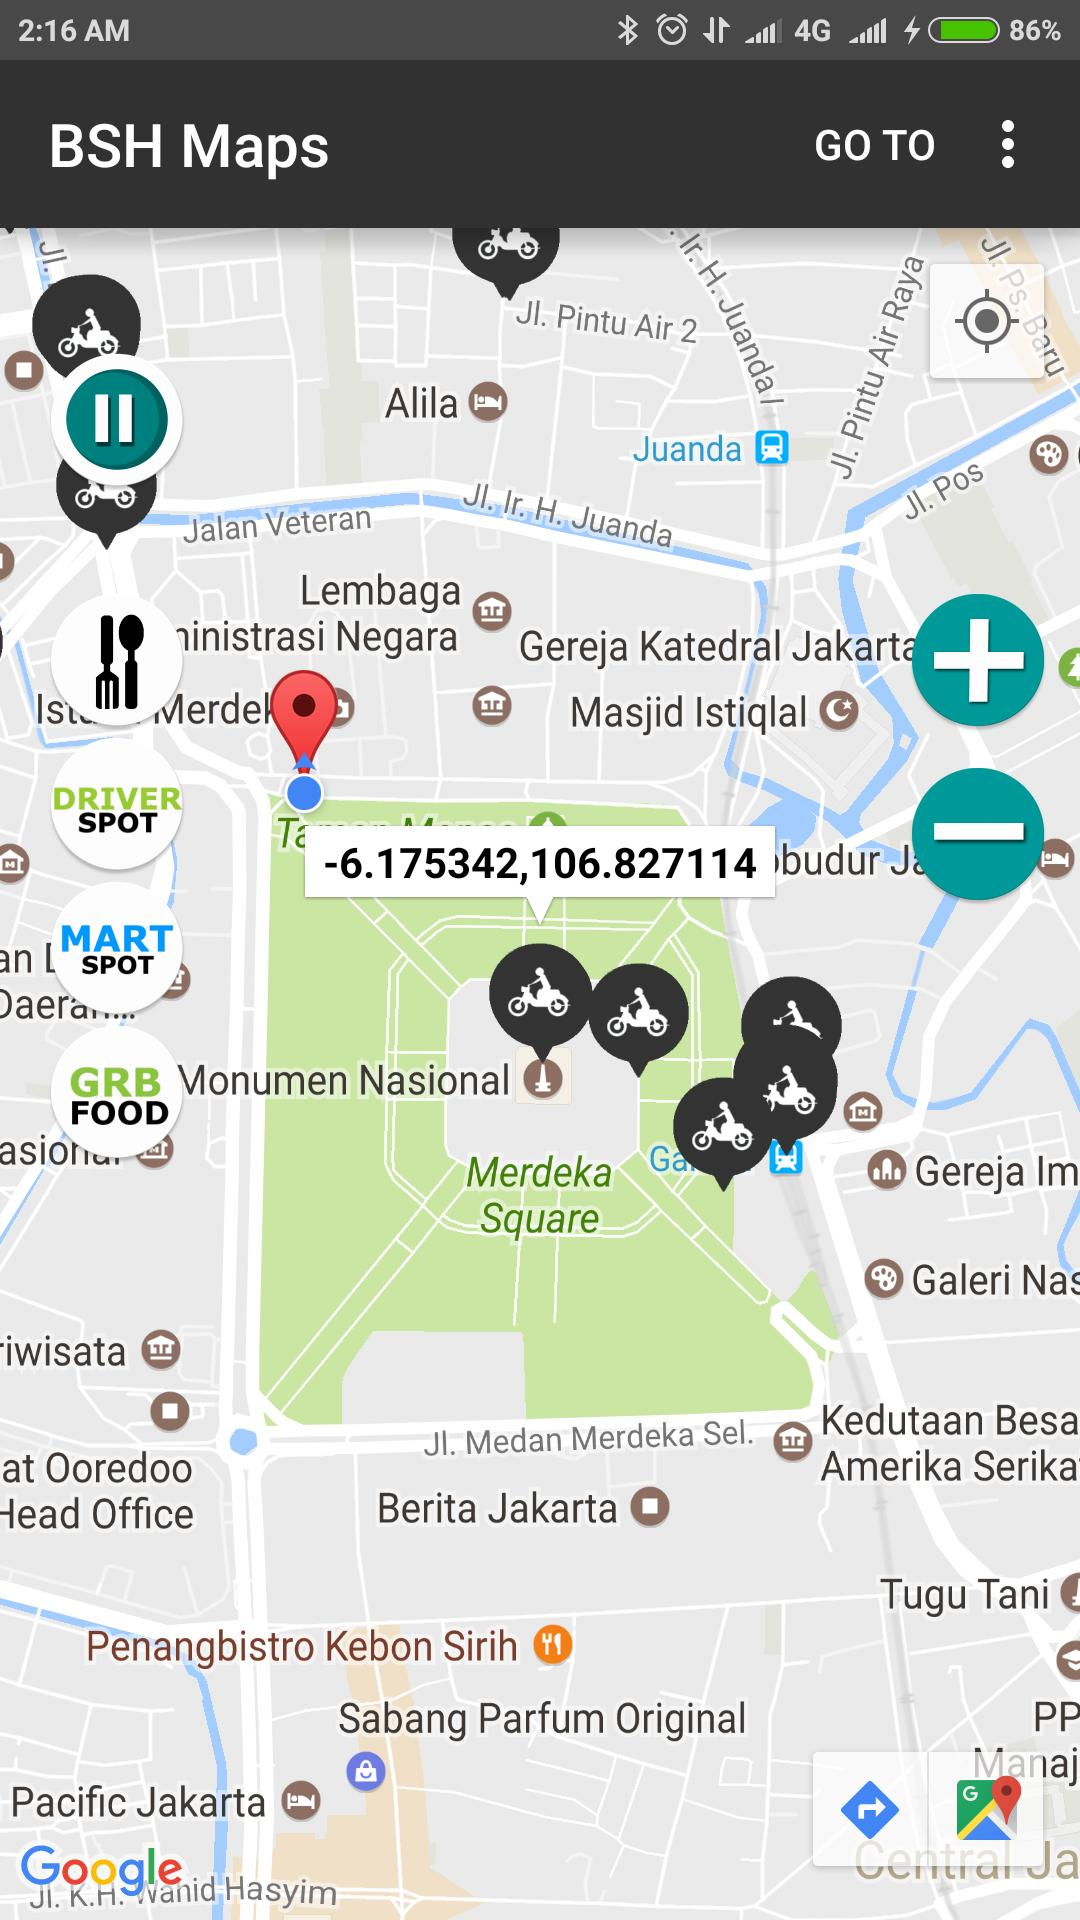 BSH Fake GPS for Android - APK Download